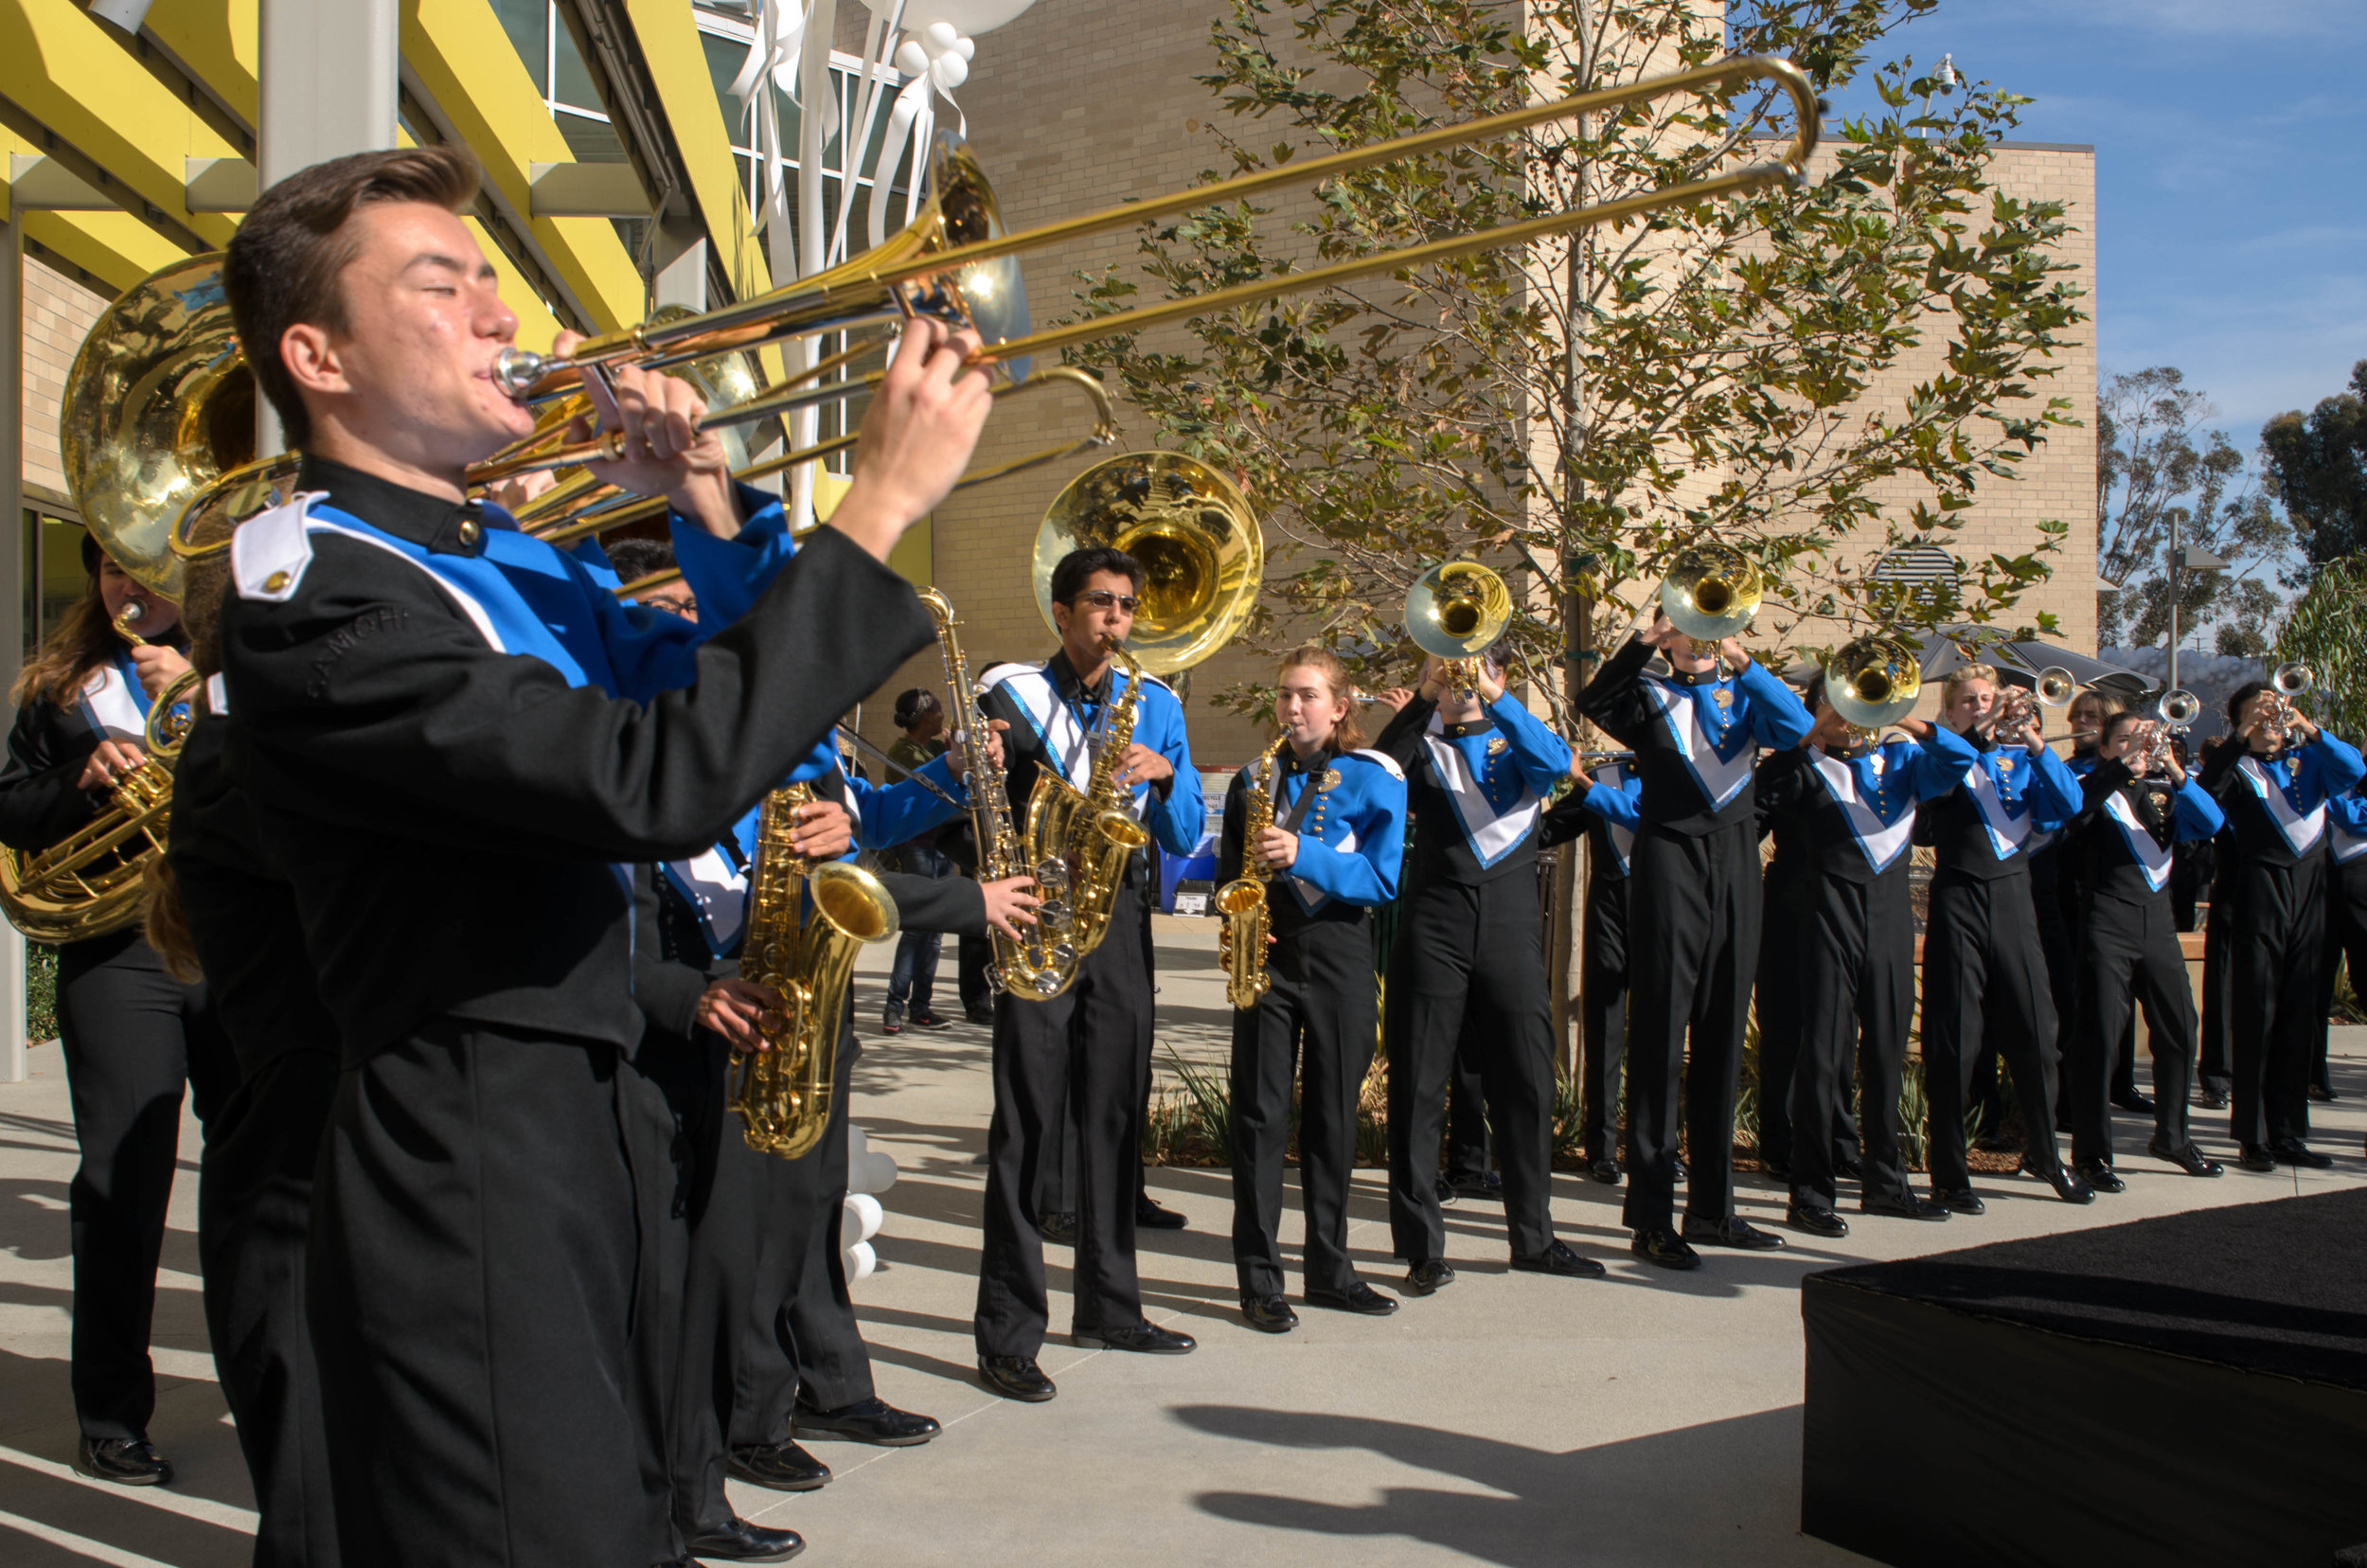 SAMOHI Viking Marching Band plays their fight song at the ribbon cutting ceremony for the opening of Center for Media and Design and KCRW Media Center. Santa Monica, Calif. December 2,2017 (Photo by: Diana Parra Garcia)